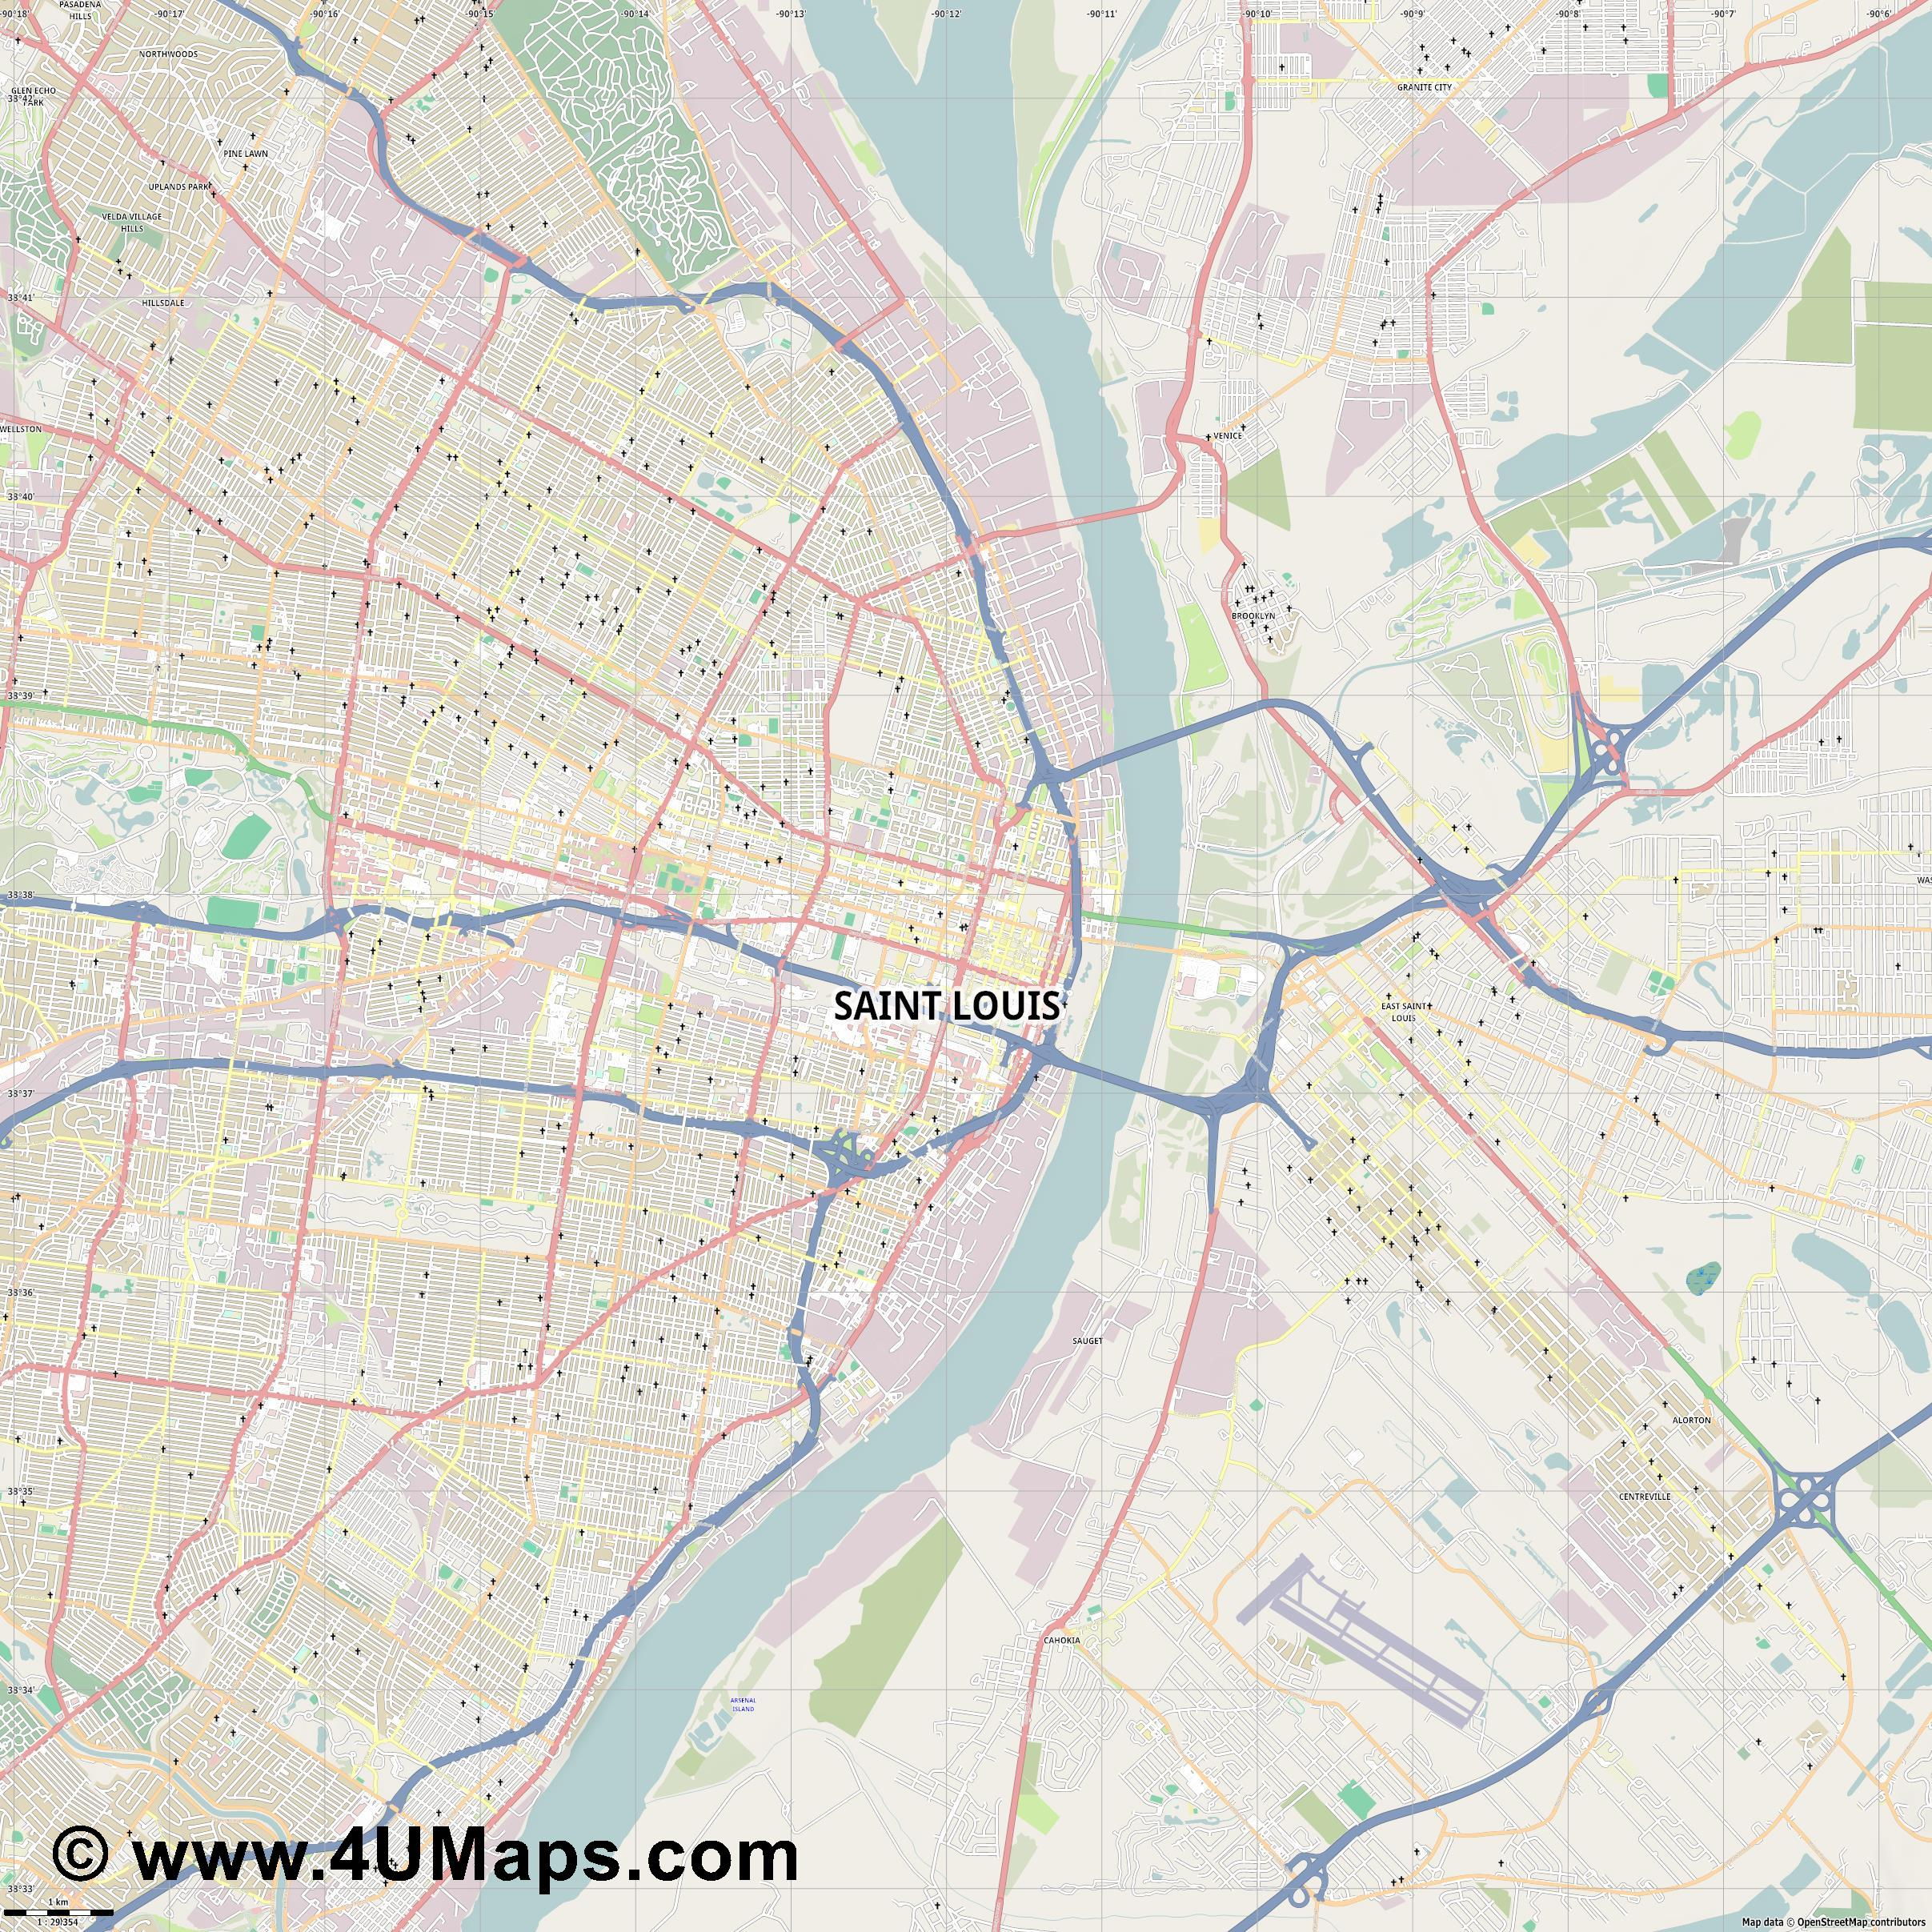 Saint Louis  jpg high detail, large area preview vector city map